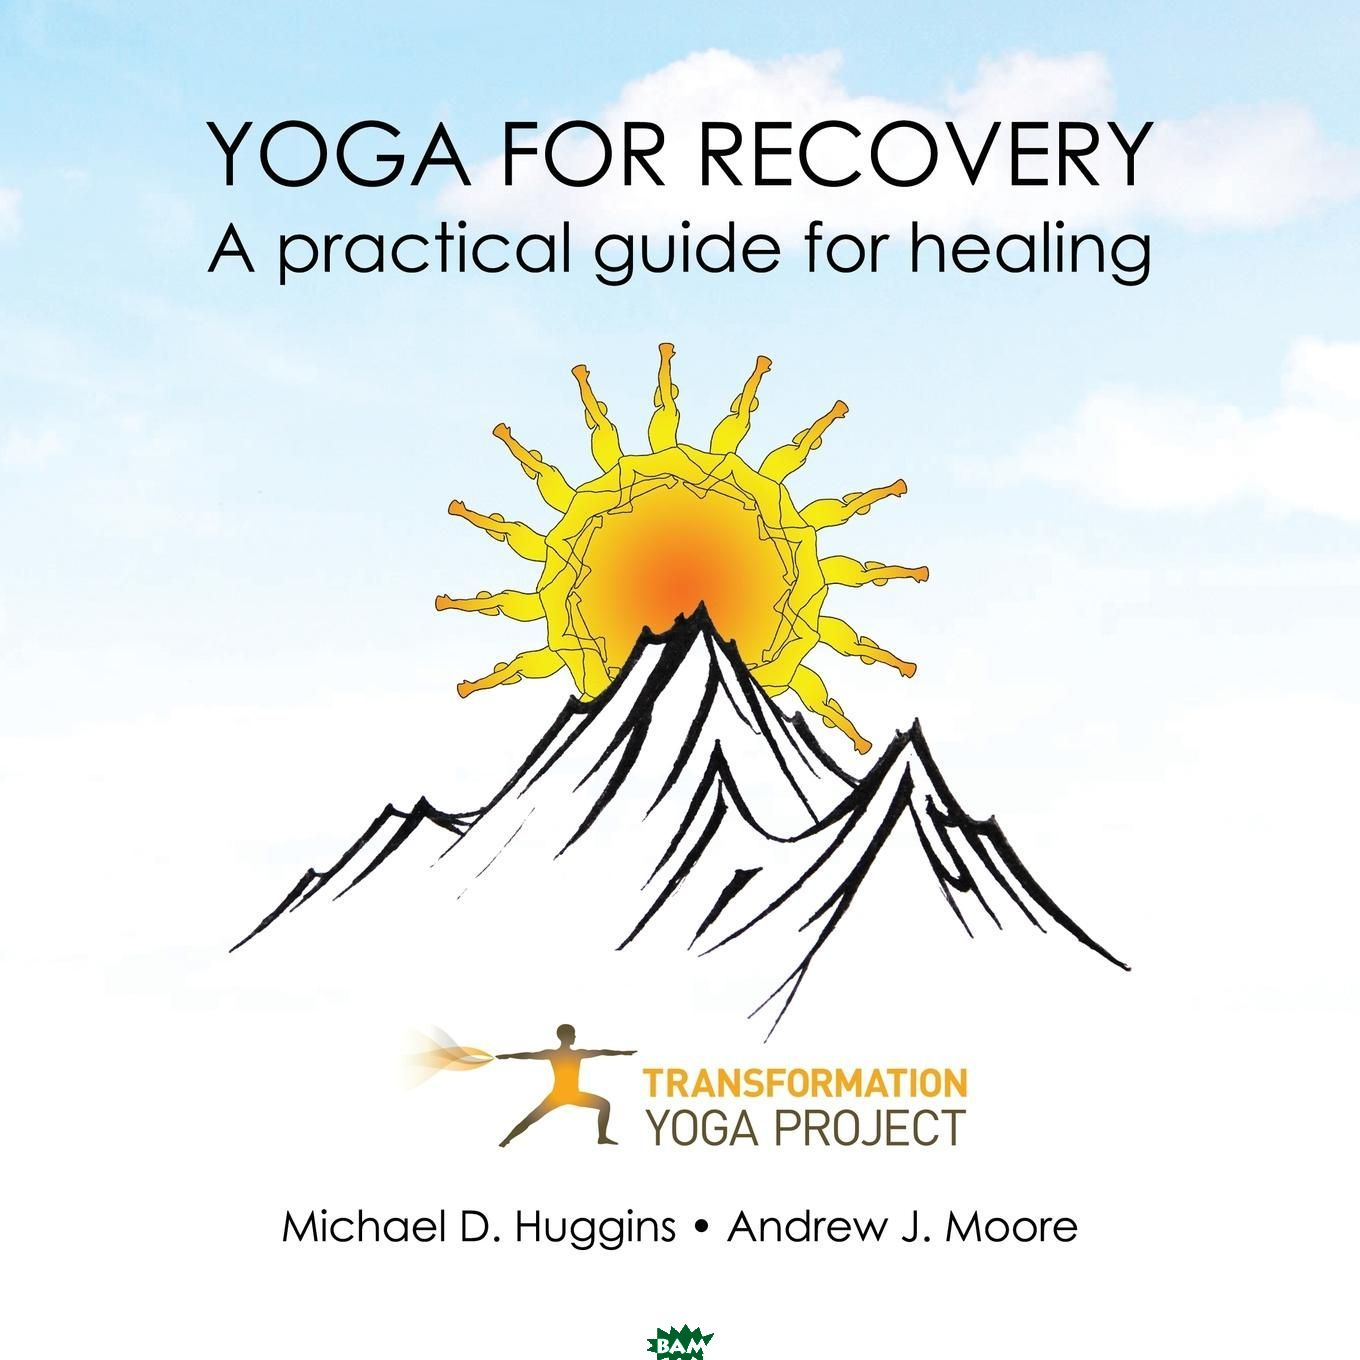 Купить Yoga For Recovery. A practical guide for healing, Transformation Yoga Project, Michael D. Huggins, Andrew J. Moore, 9781946005274